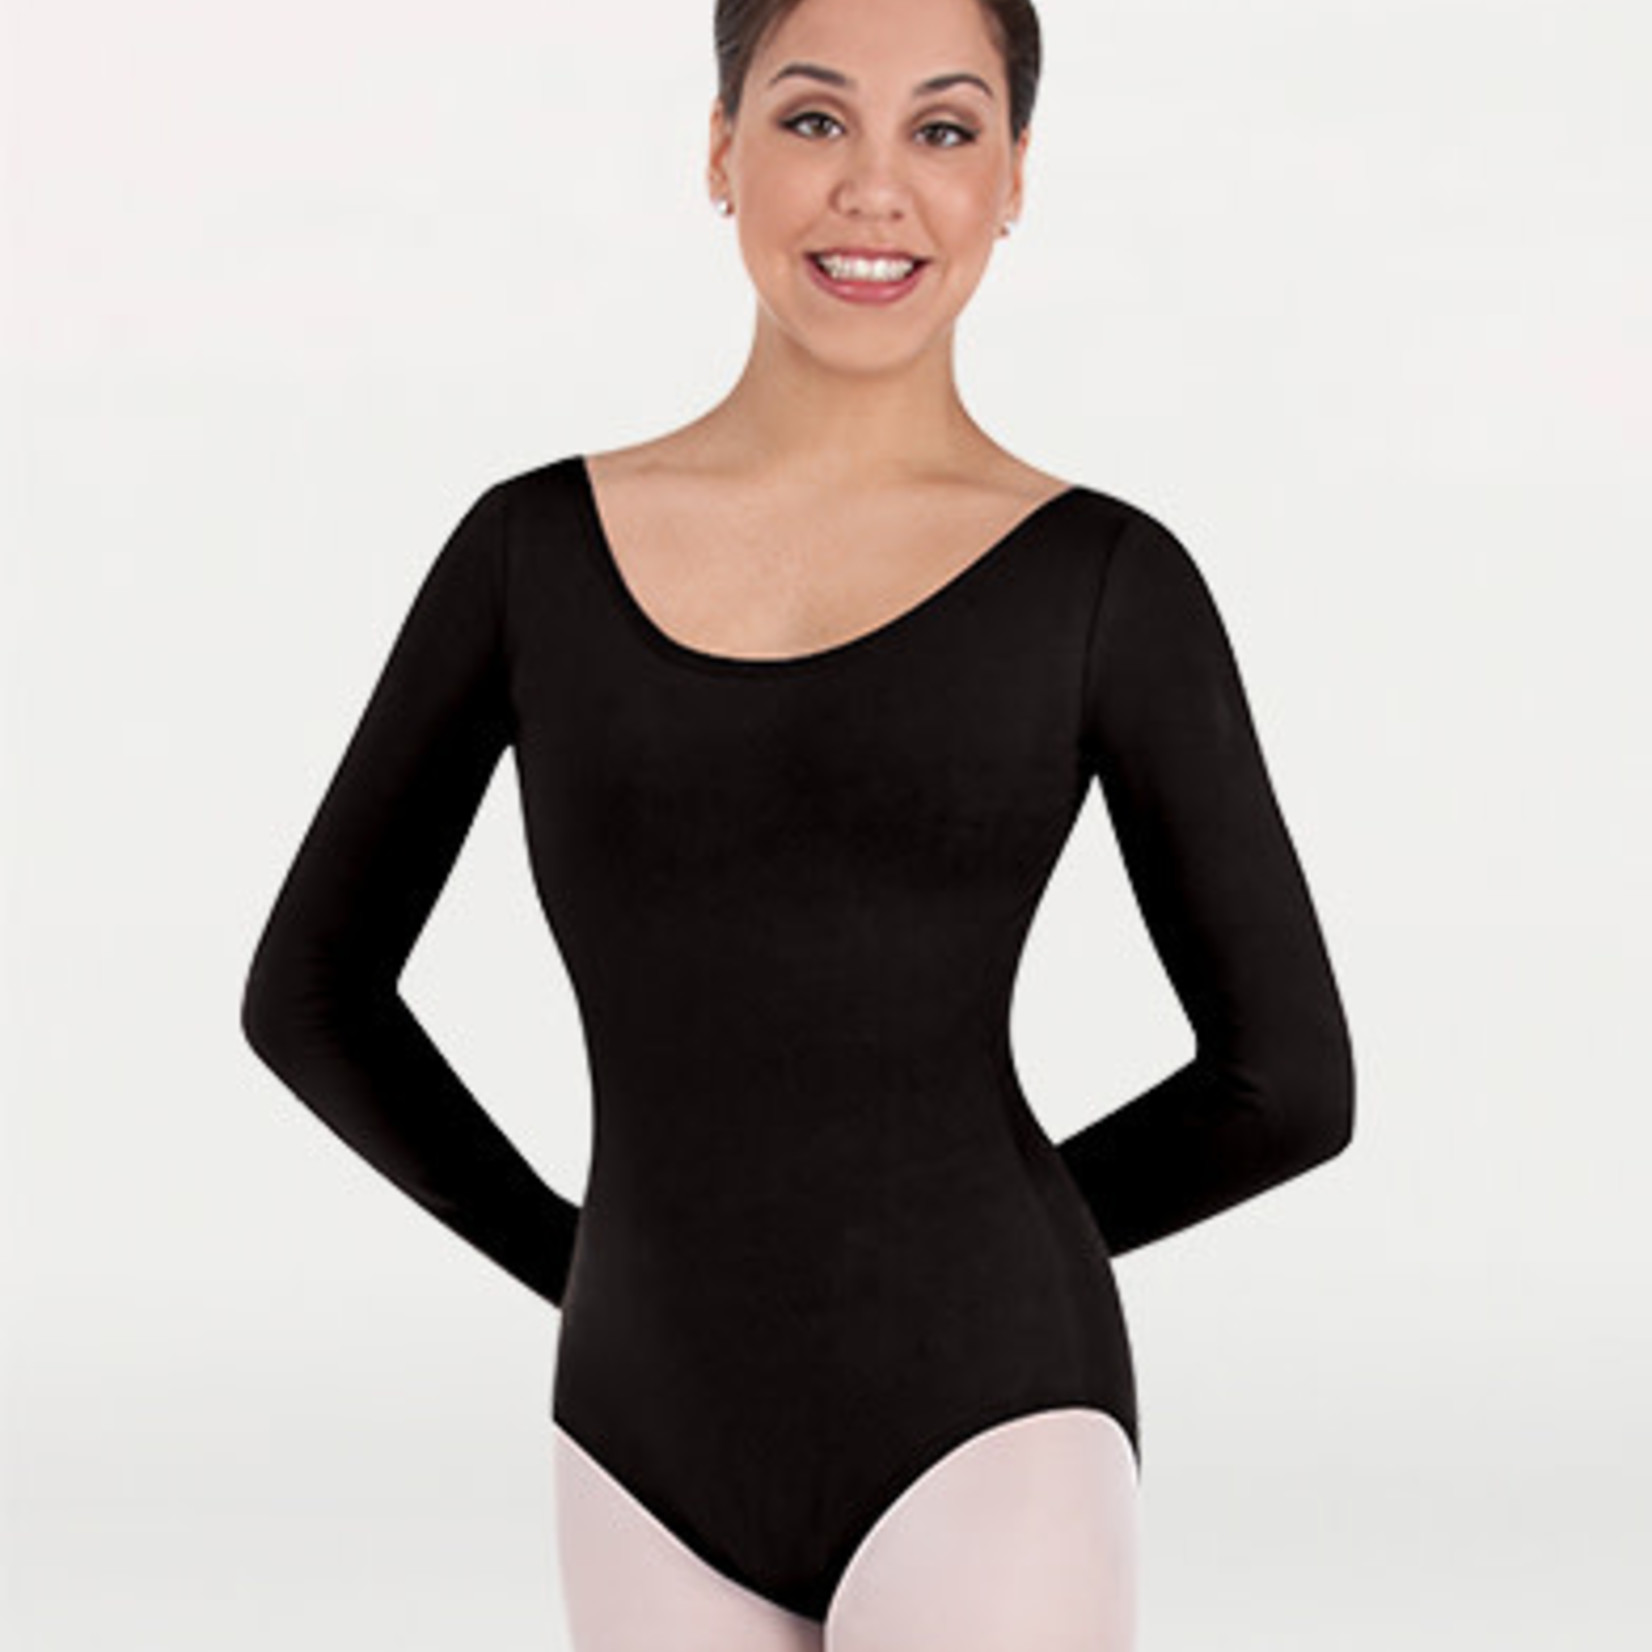 Body Wrappers Body Wrappers BWC326 Adult Long Sleeve Leotard